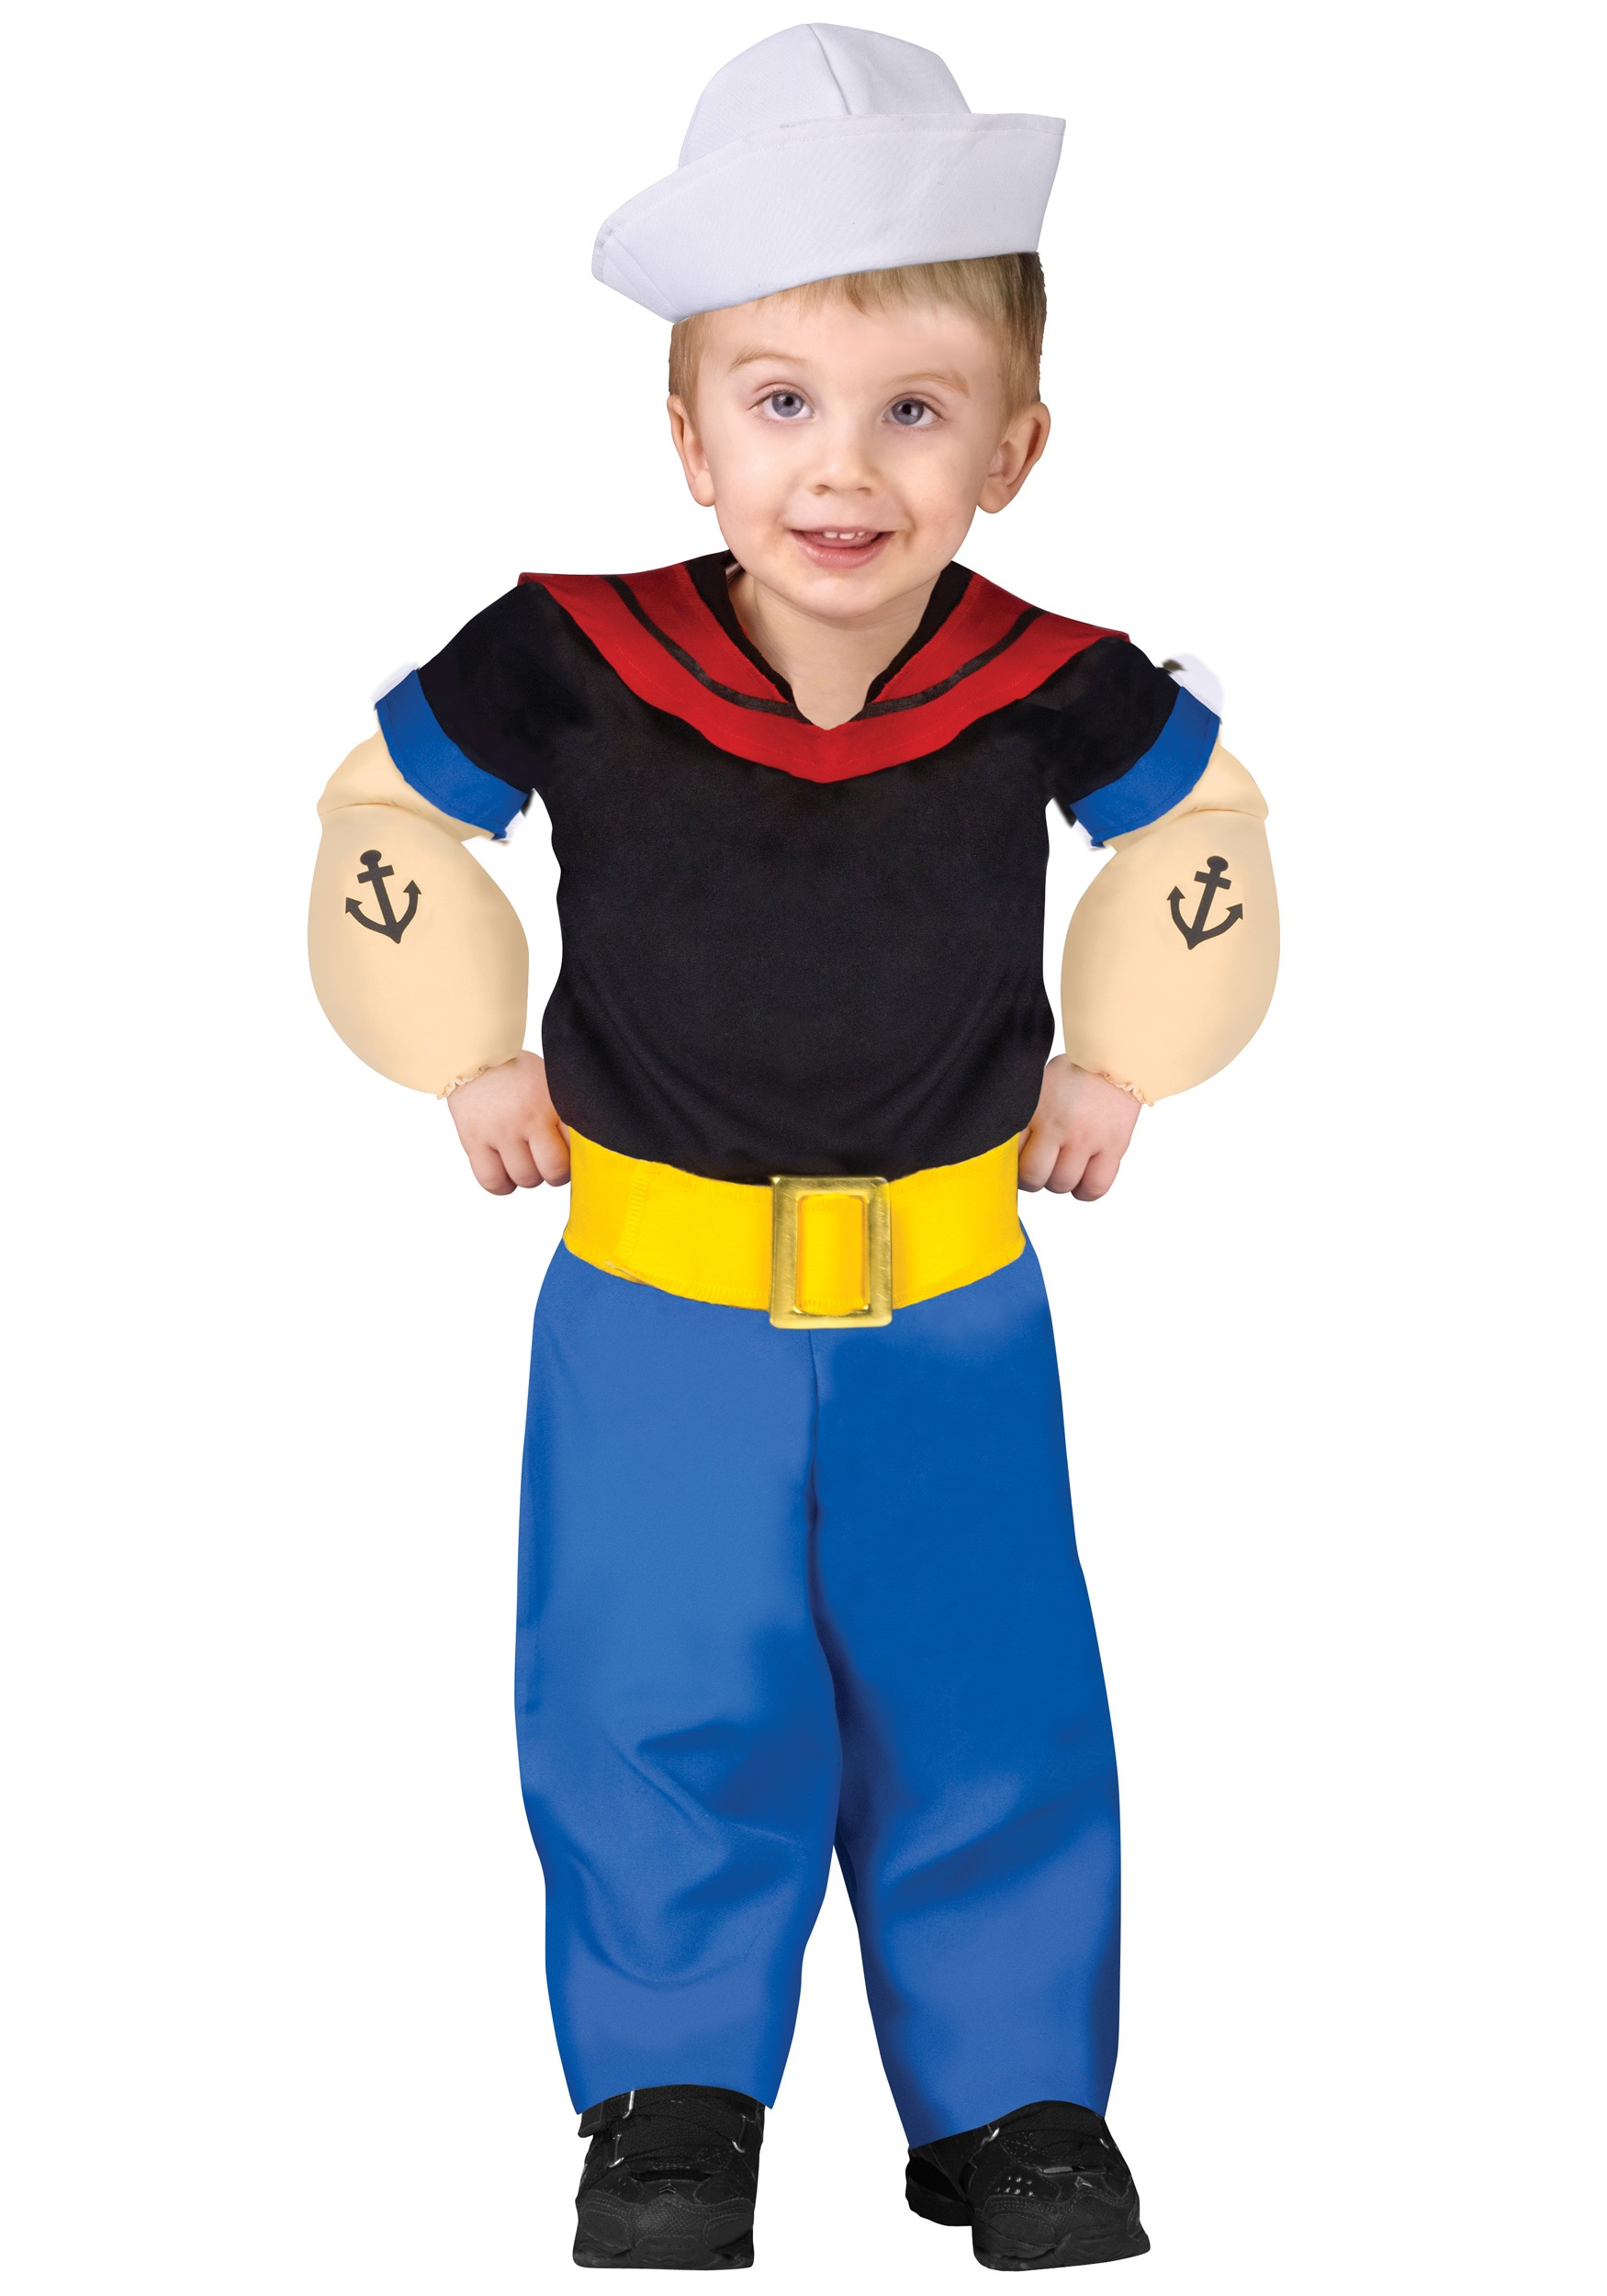 Cartoon Costumes - Adult and Child Costumes from Popular Cartoons